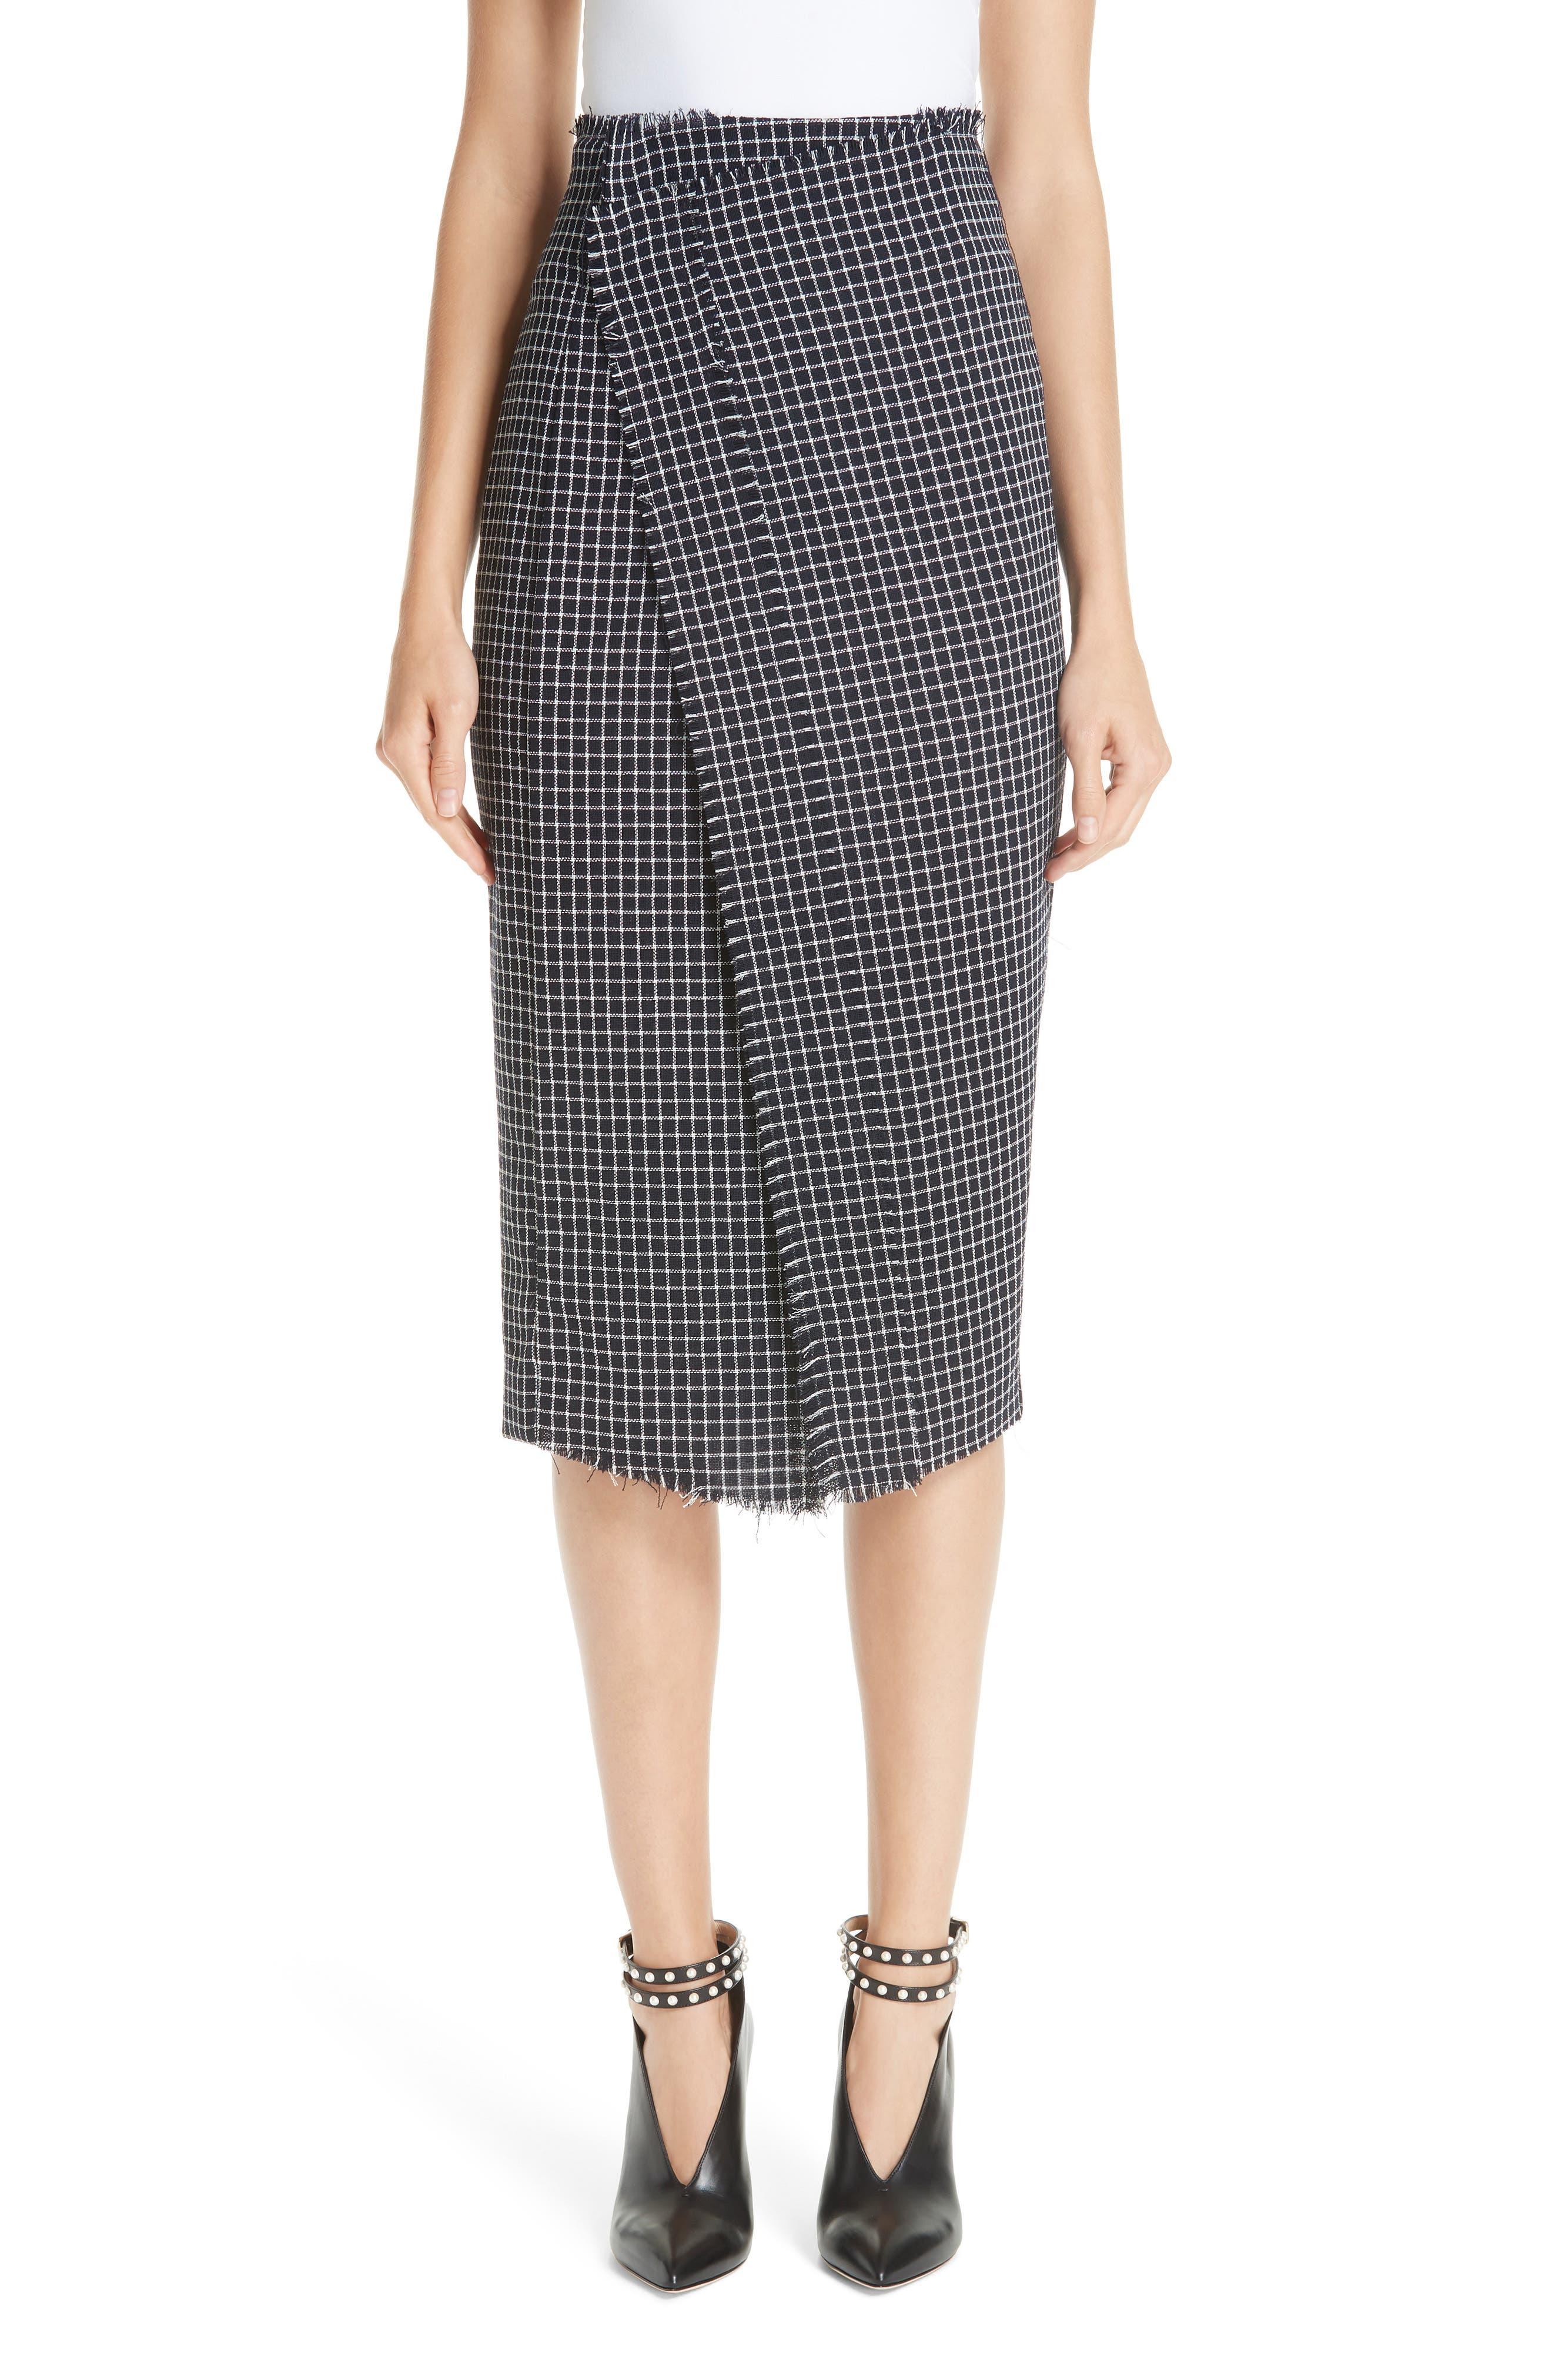 JASON WU COLLECTION,                             Wool Check Skirt,                             Main thumbnail 1, color,                             001